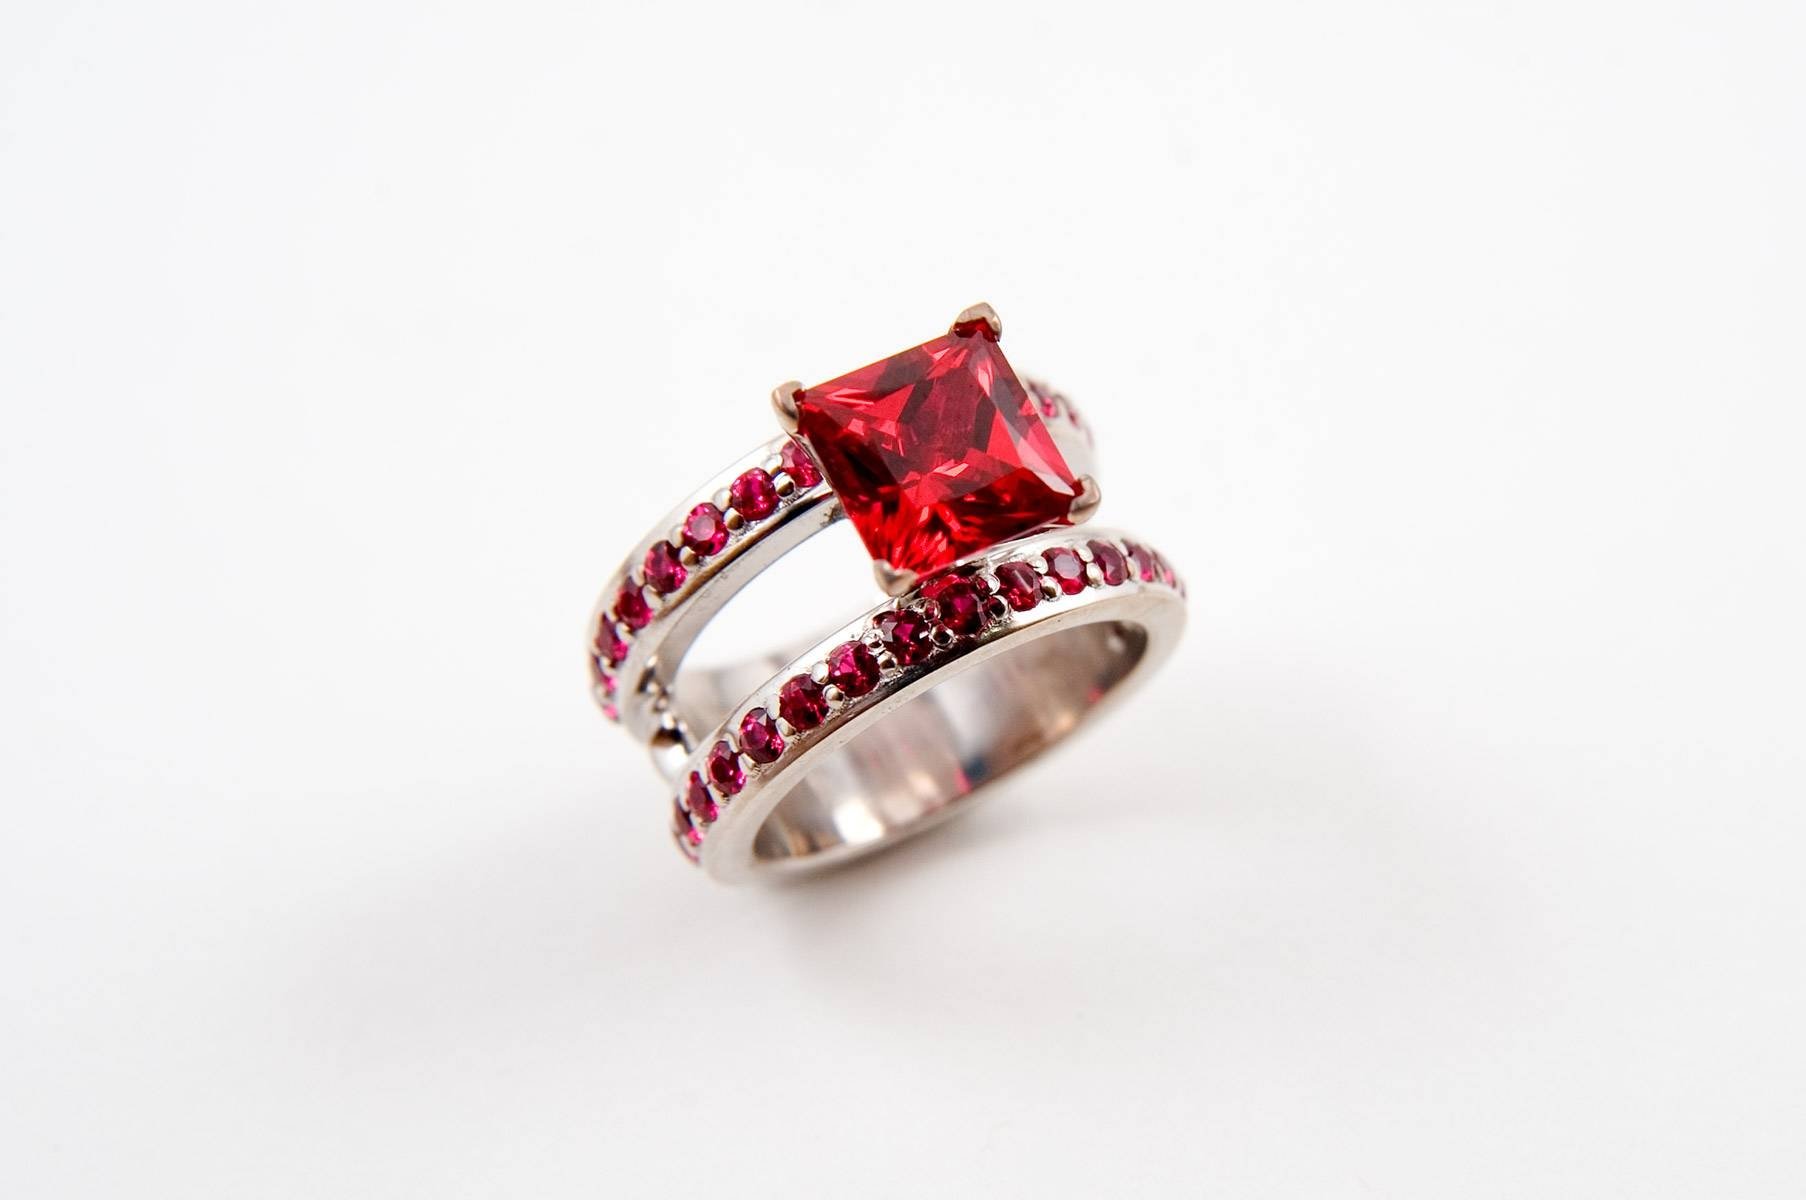 Wedding Rings : Cartier Engagement Rings Ruby Wedding Band Ruby In Most Up To Date Ruby Anniversary Rings (View 21 of 25)